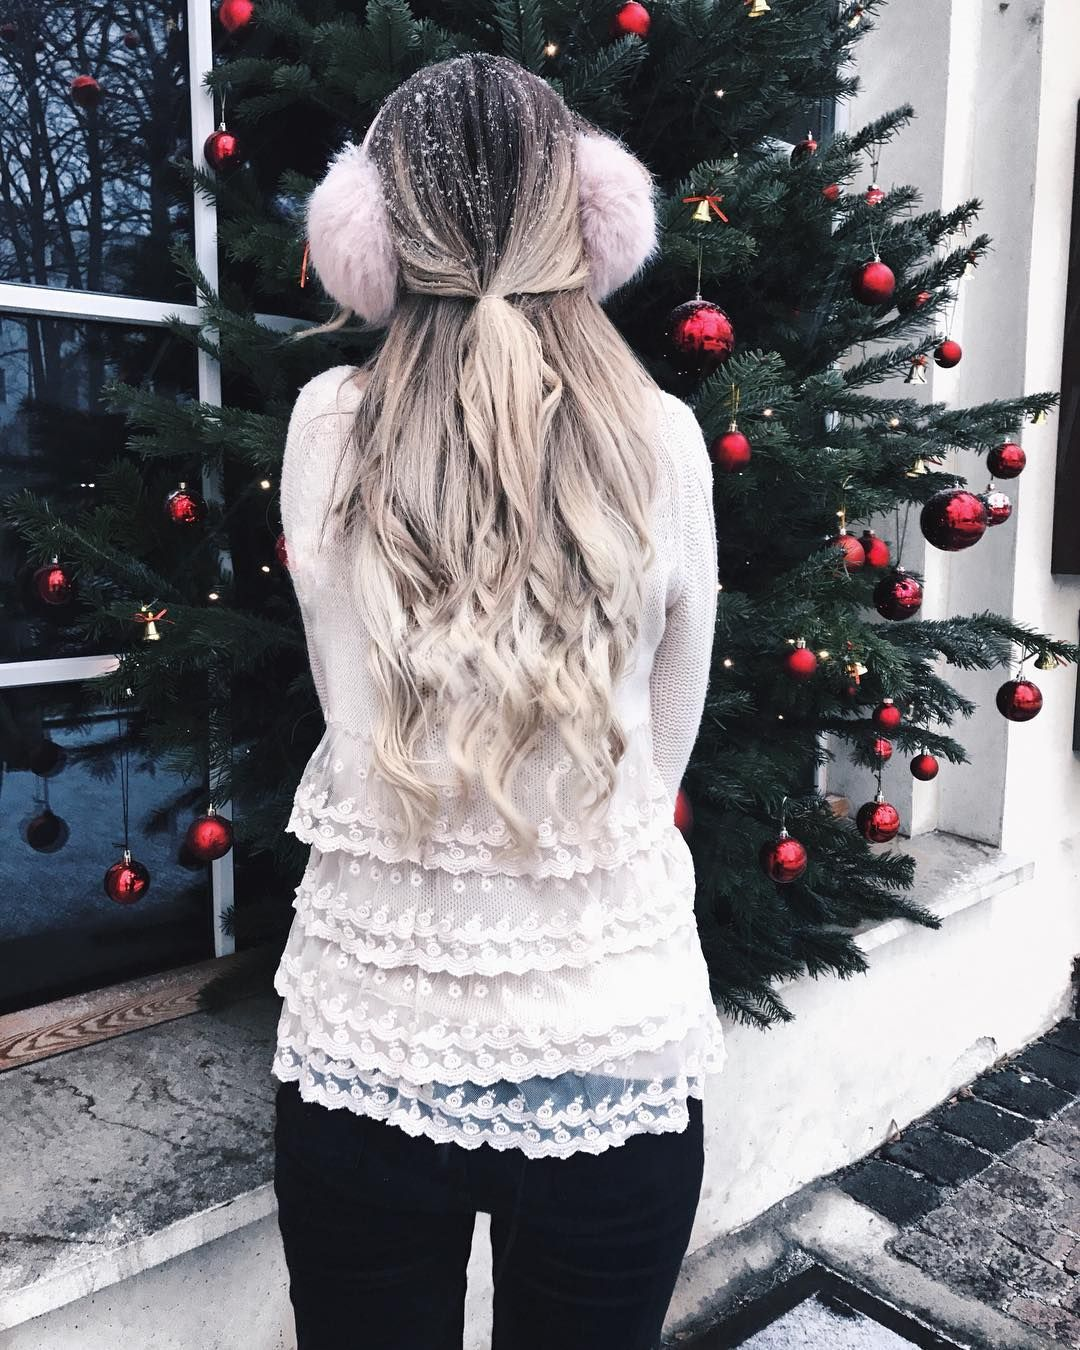 Virtual Hairstyle For Your Face: Long Curly Hairstyles